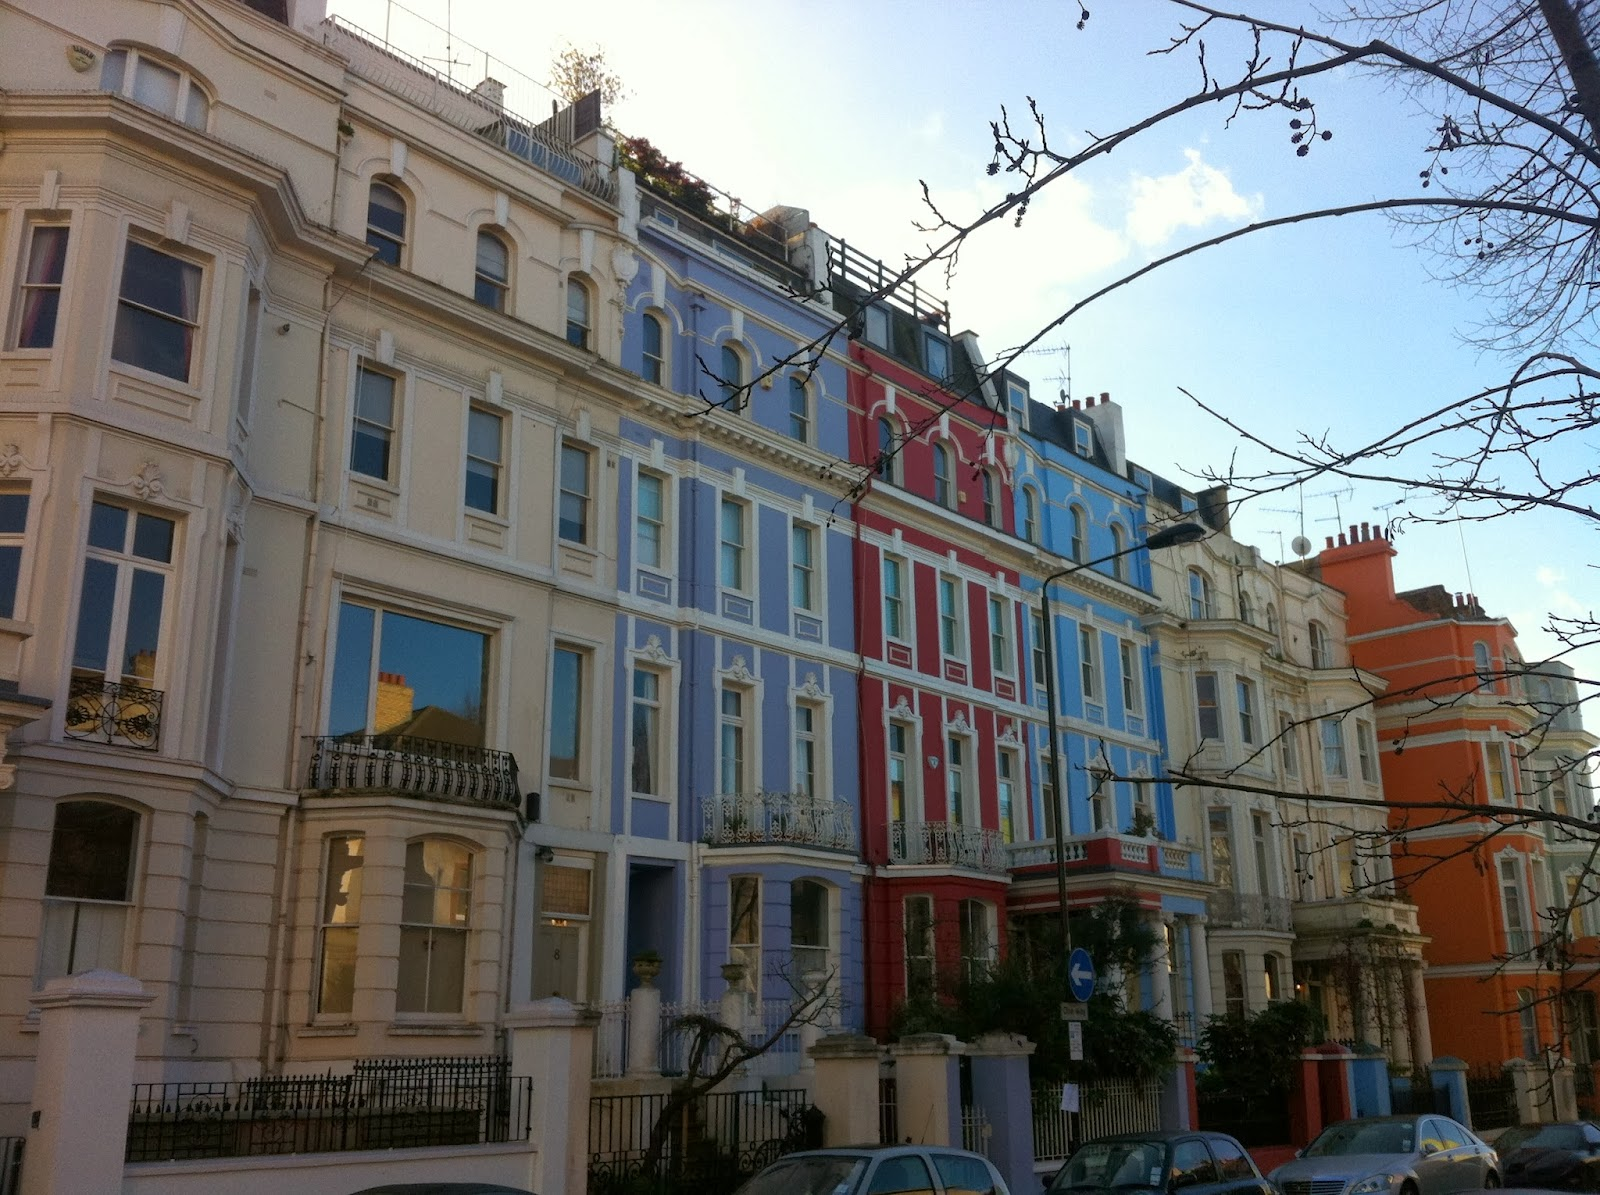 street art and food markets in notting hill and portobello road a little further north. Black Bedroom Furniture Sets. Home Design Ideas